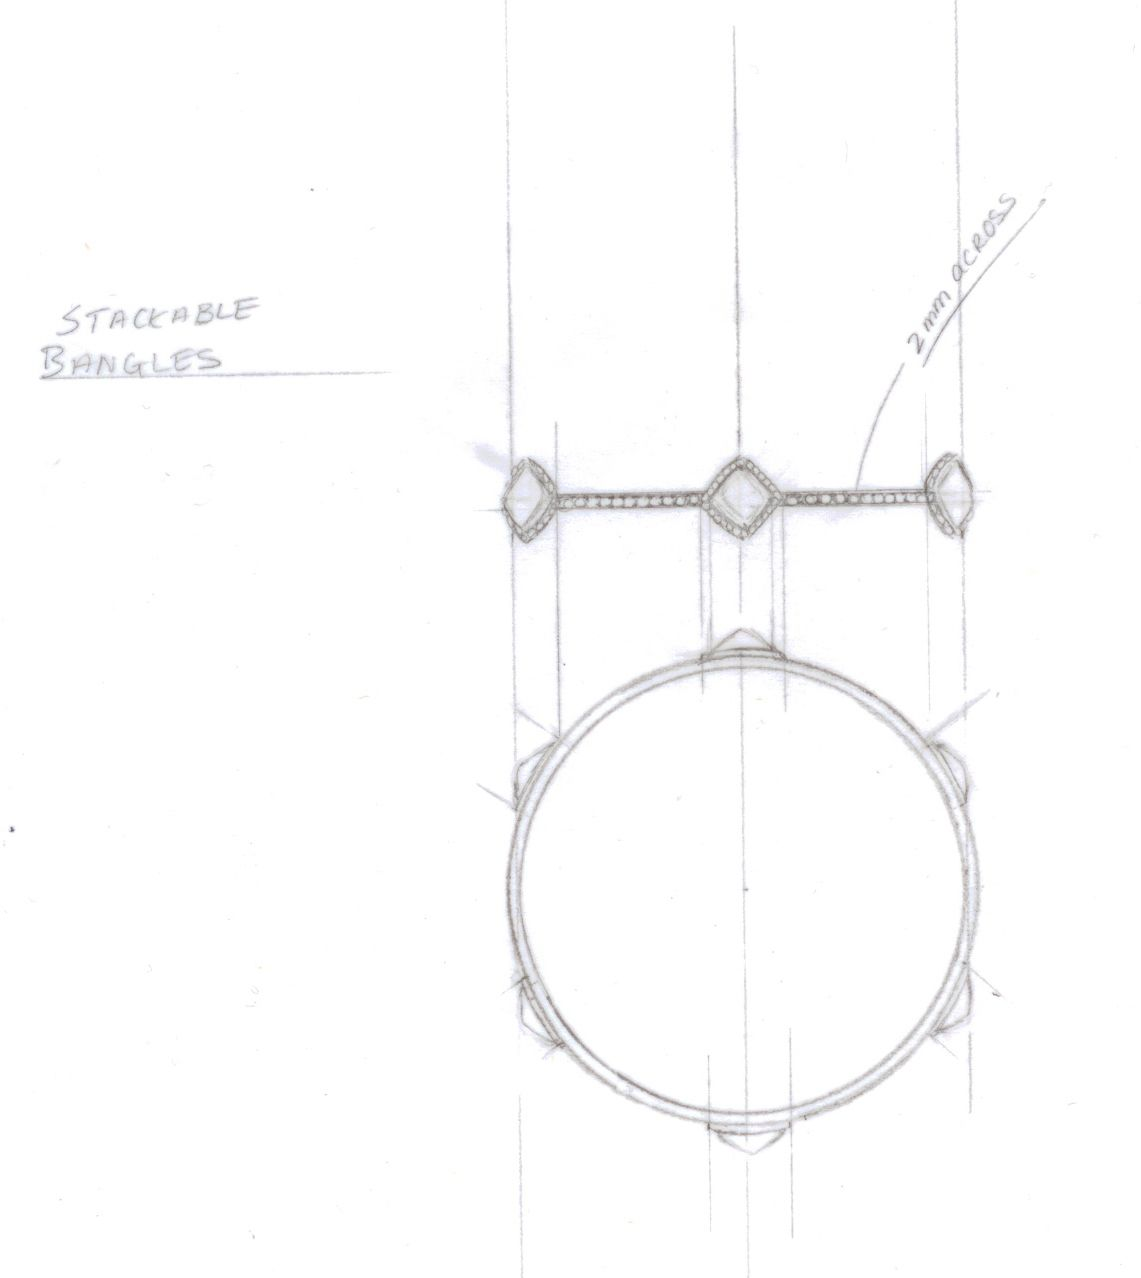 Rough diamond bangle sketch. #drawings #illustration #jewelry #art